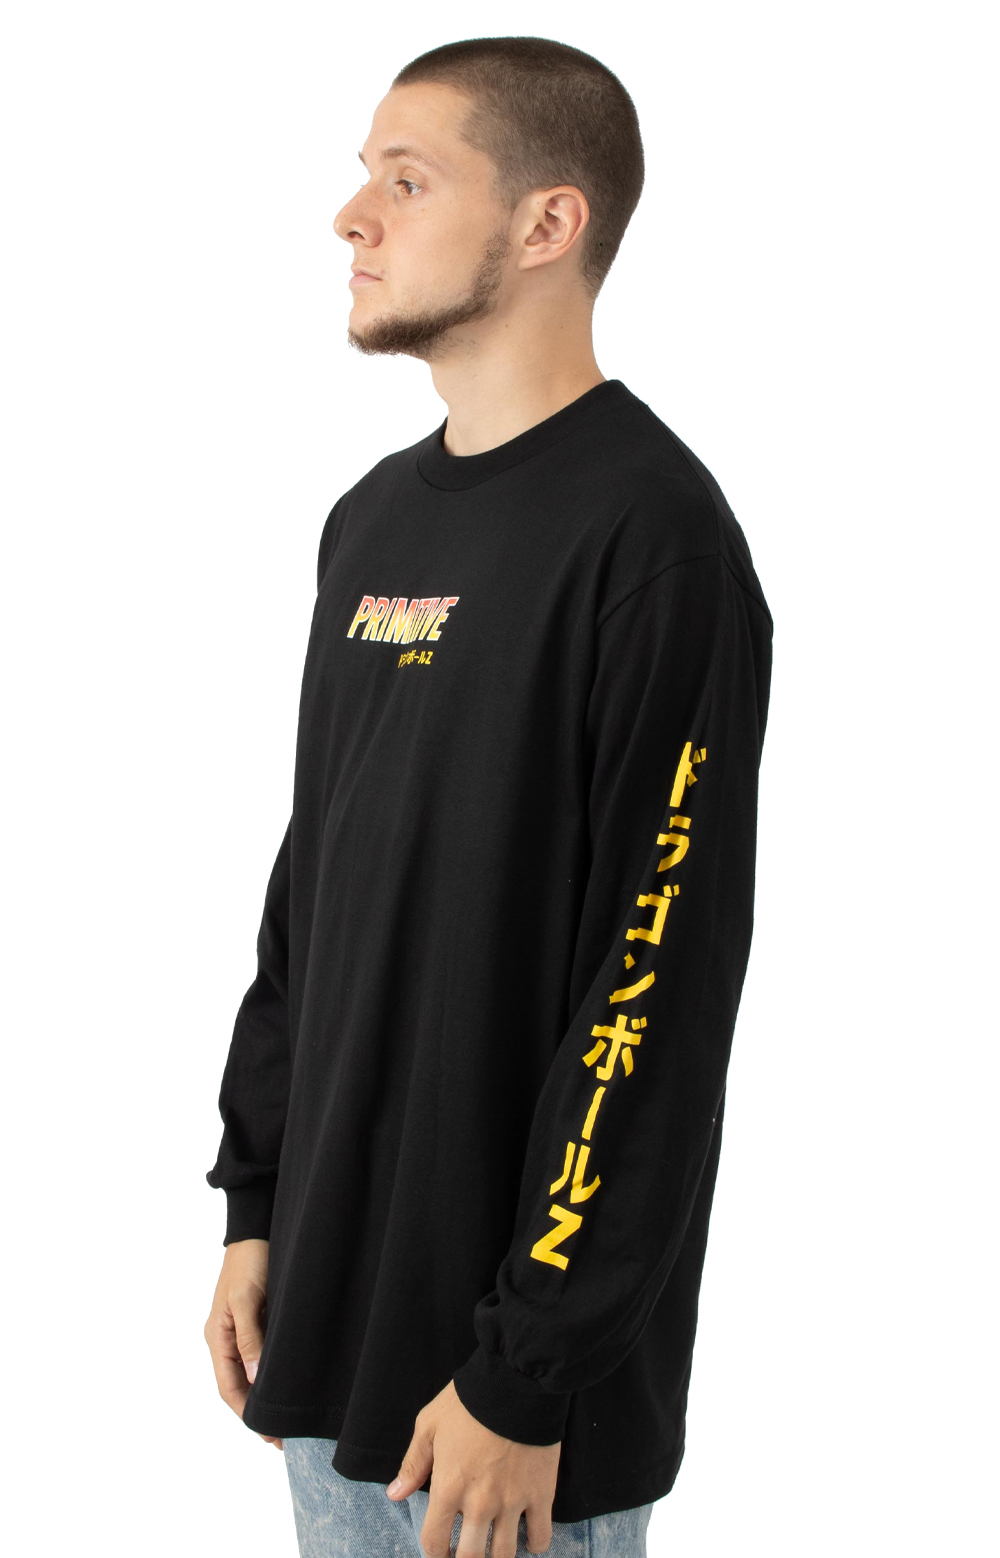 Super Saiyan Goku L/S Shirt - Black 3